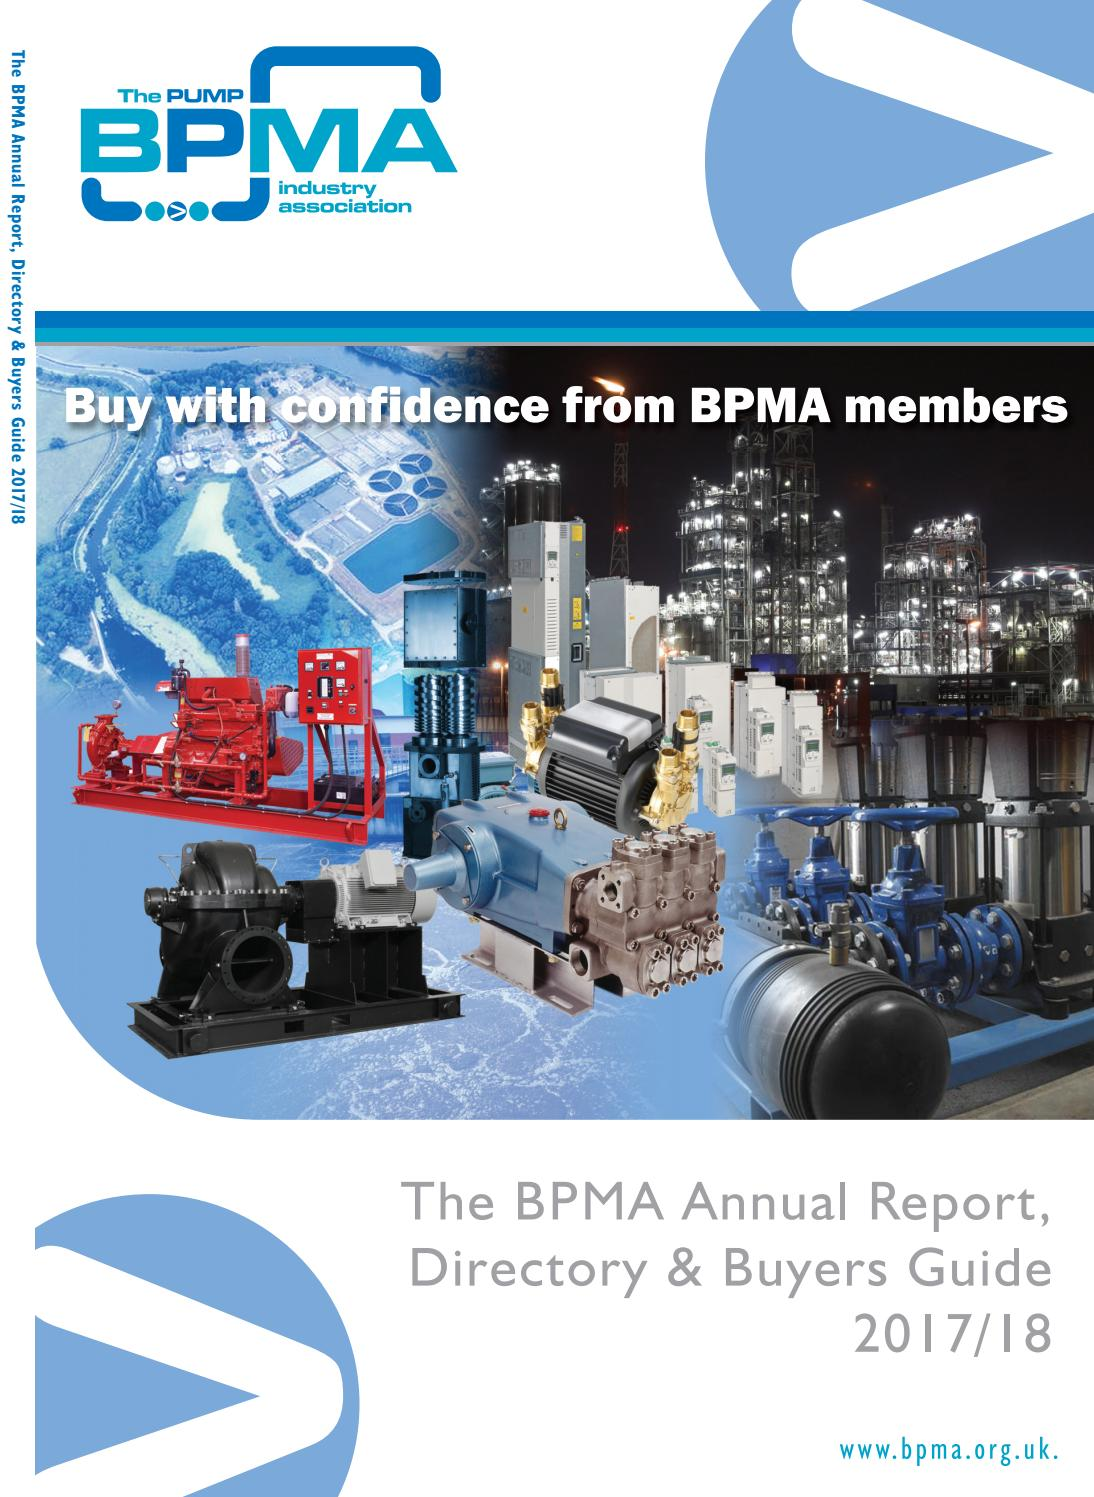 BPMA Annual Report, Directory & Buyers Guide 2017/18 by Michael Lane